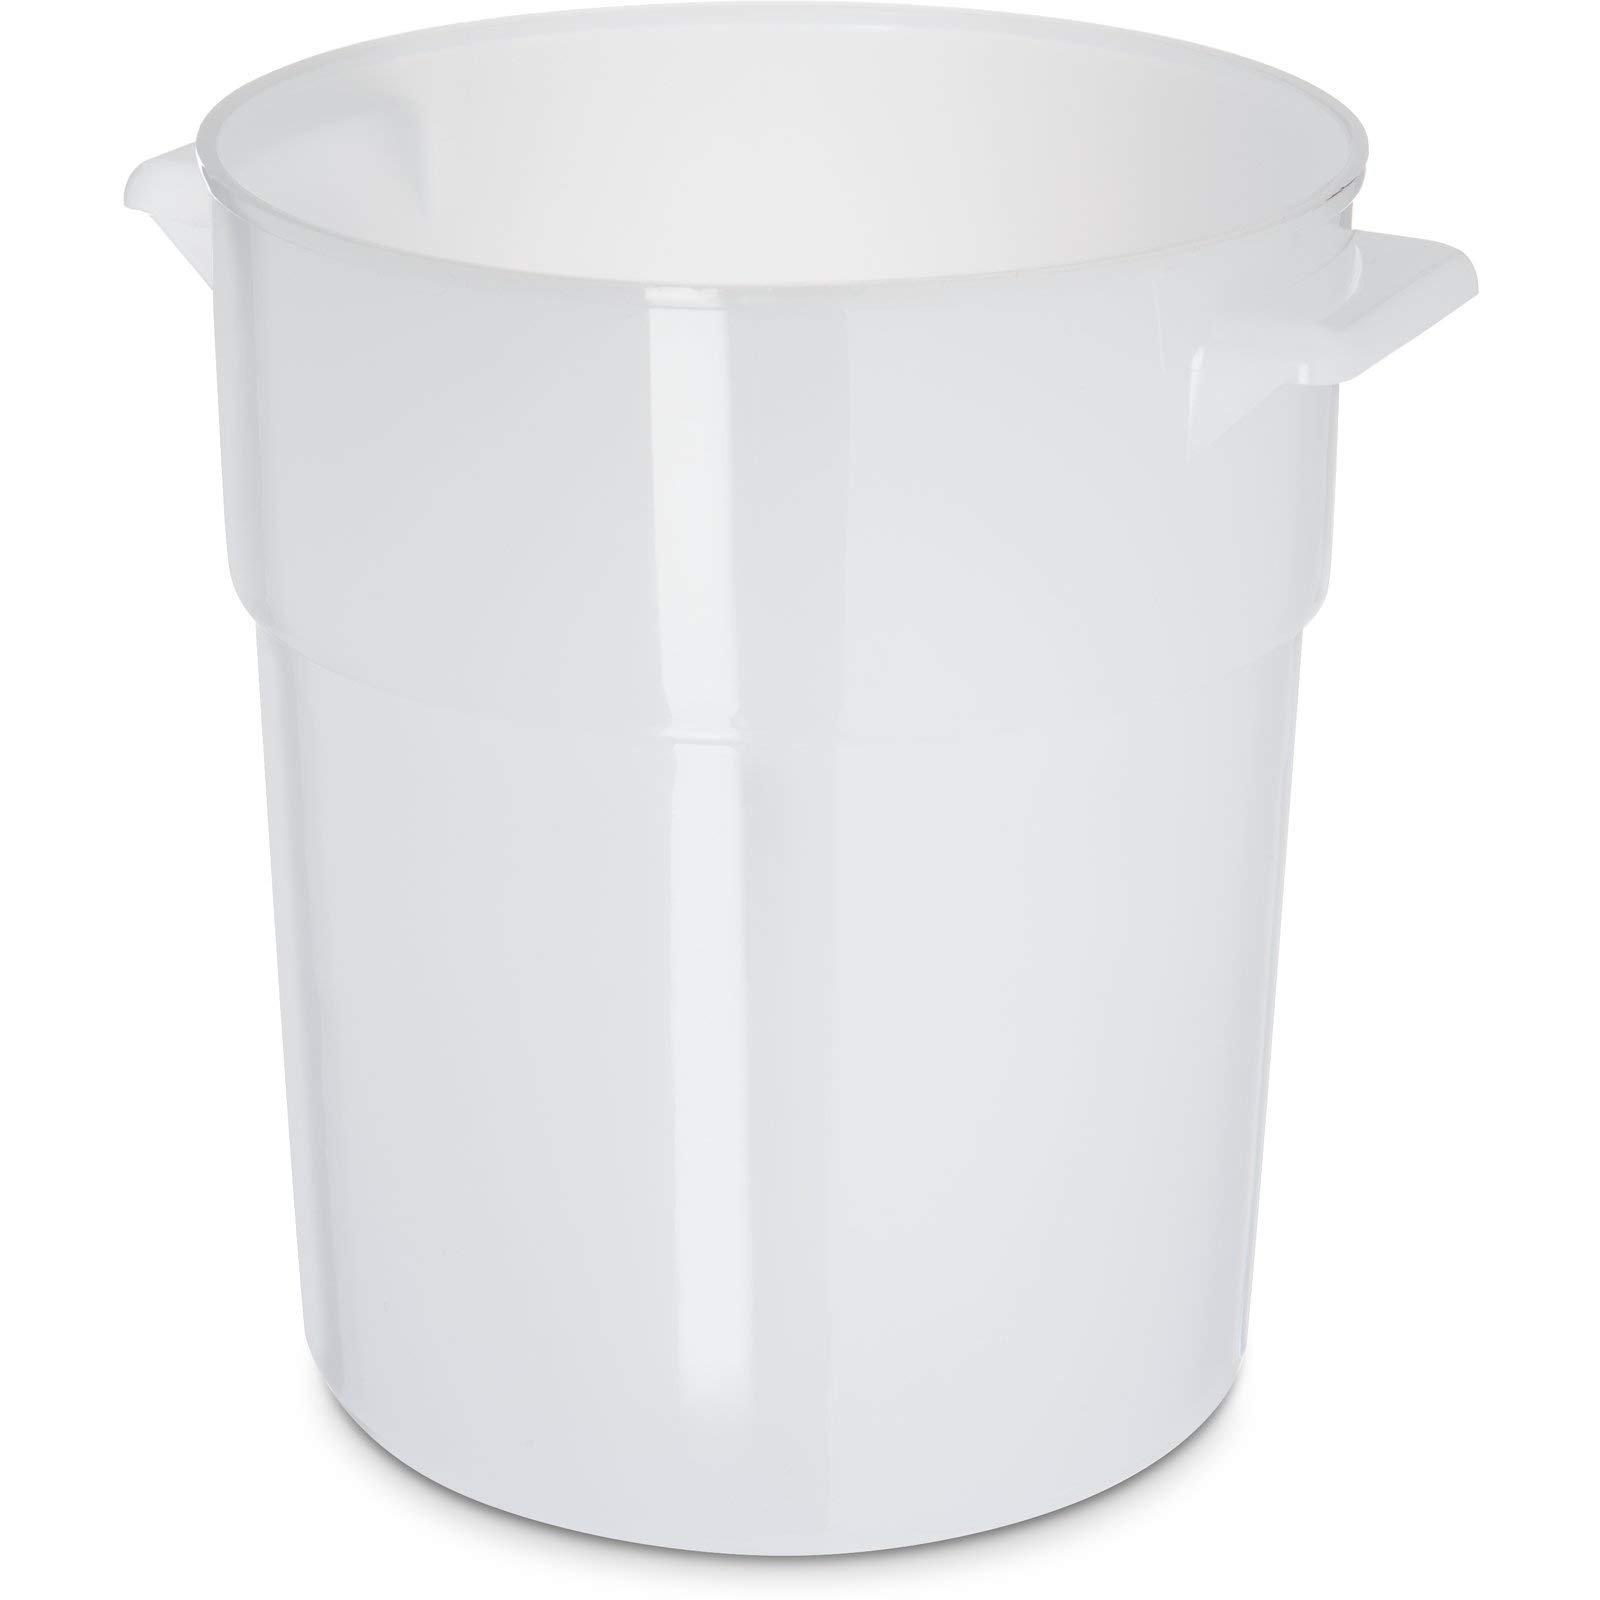 Organic San Francisco Sourdough Bread Starter and 3.5-Quart Dough Rising Bucket with Lid by SourdoughBreads (Image #4)